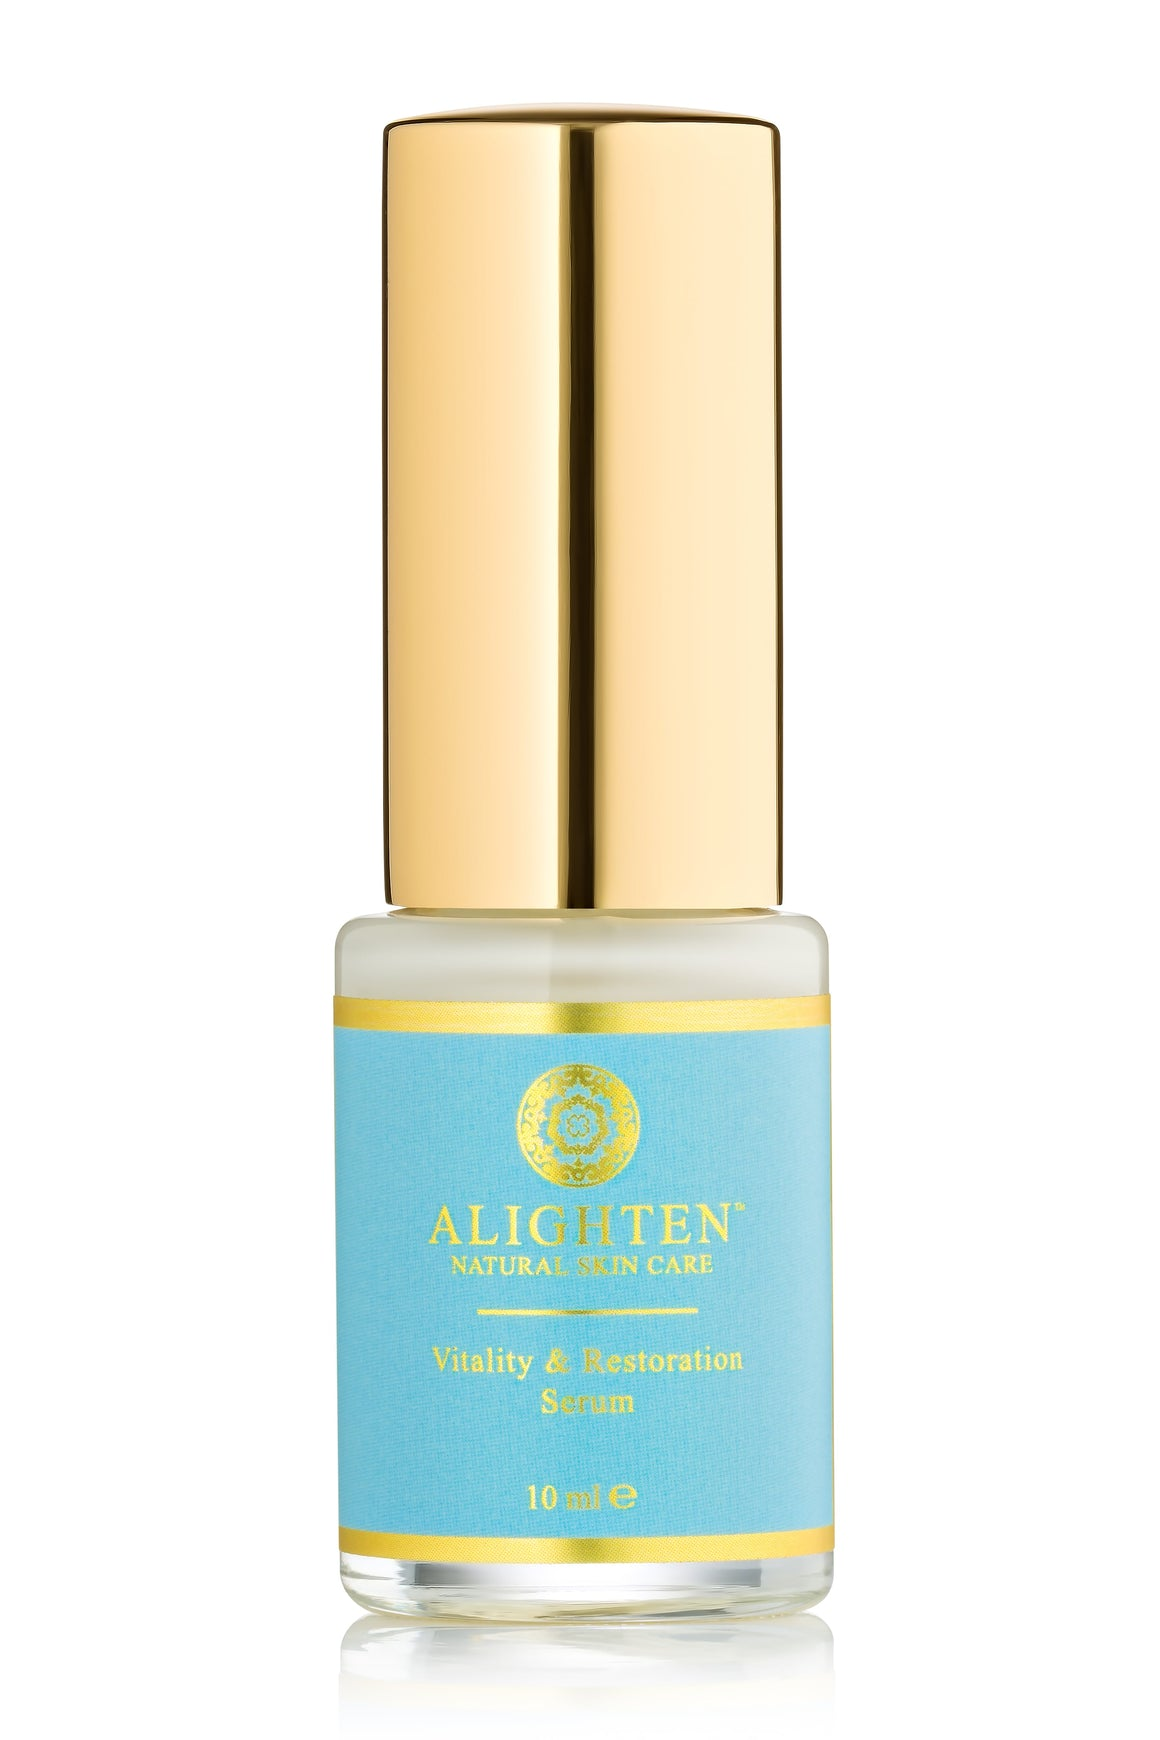 Vitality and Restoration Serum - Mini/Travel Size